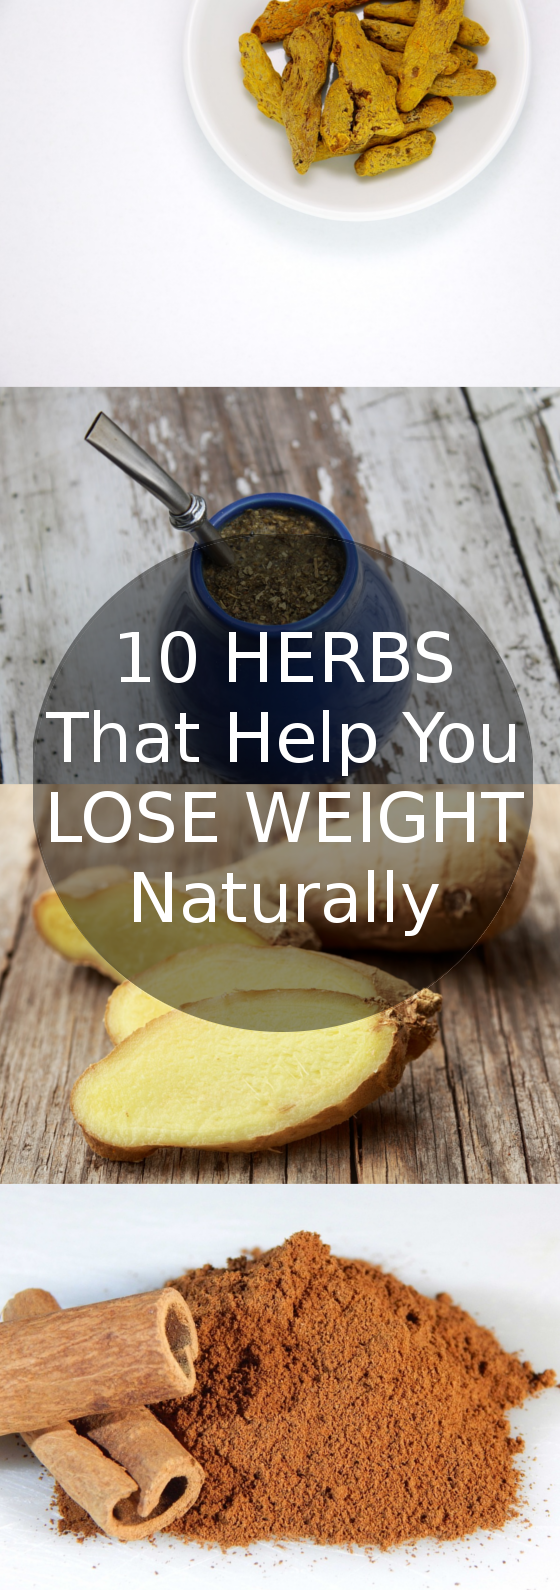 10 Herbs that help you lose weight naturally